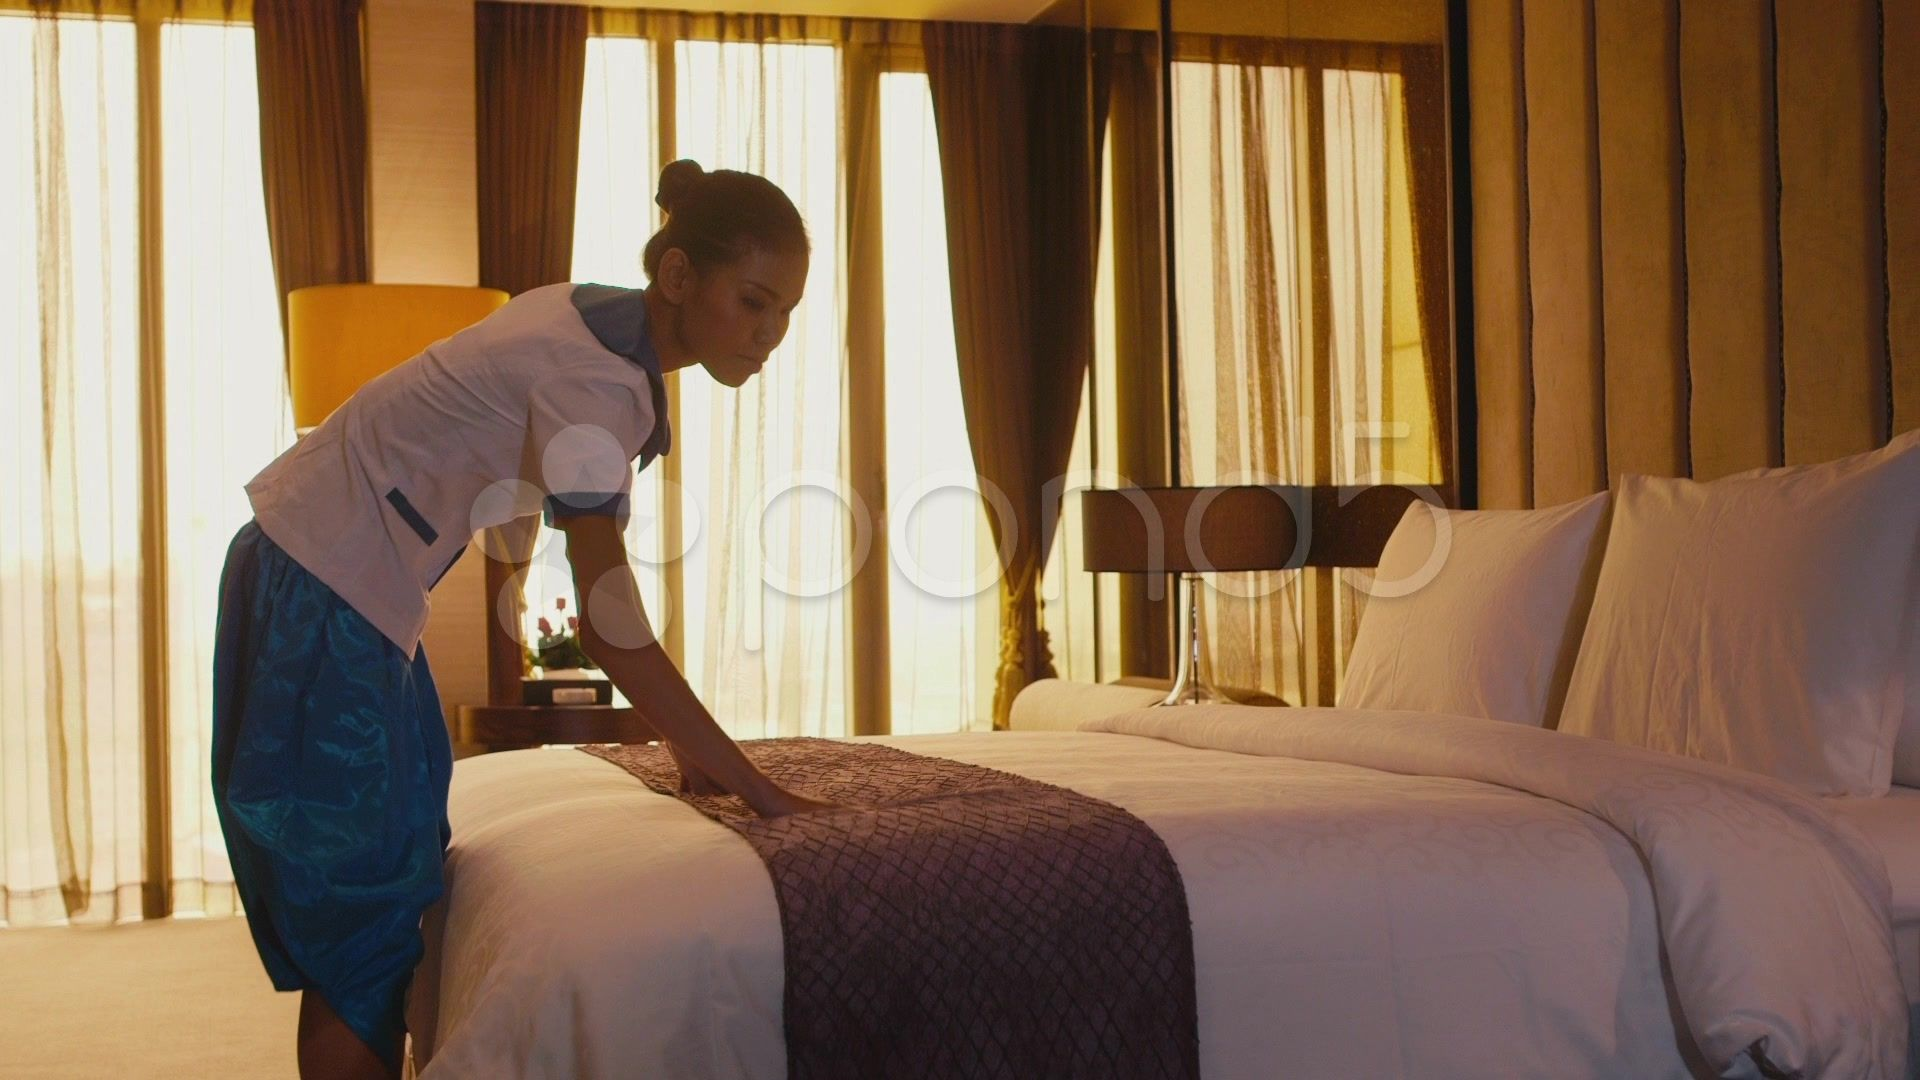 1of5 Asian Maid Cleaning Hotel Room Woman People At Work Stock